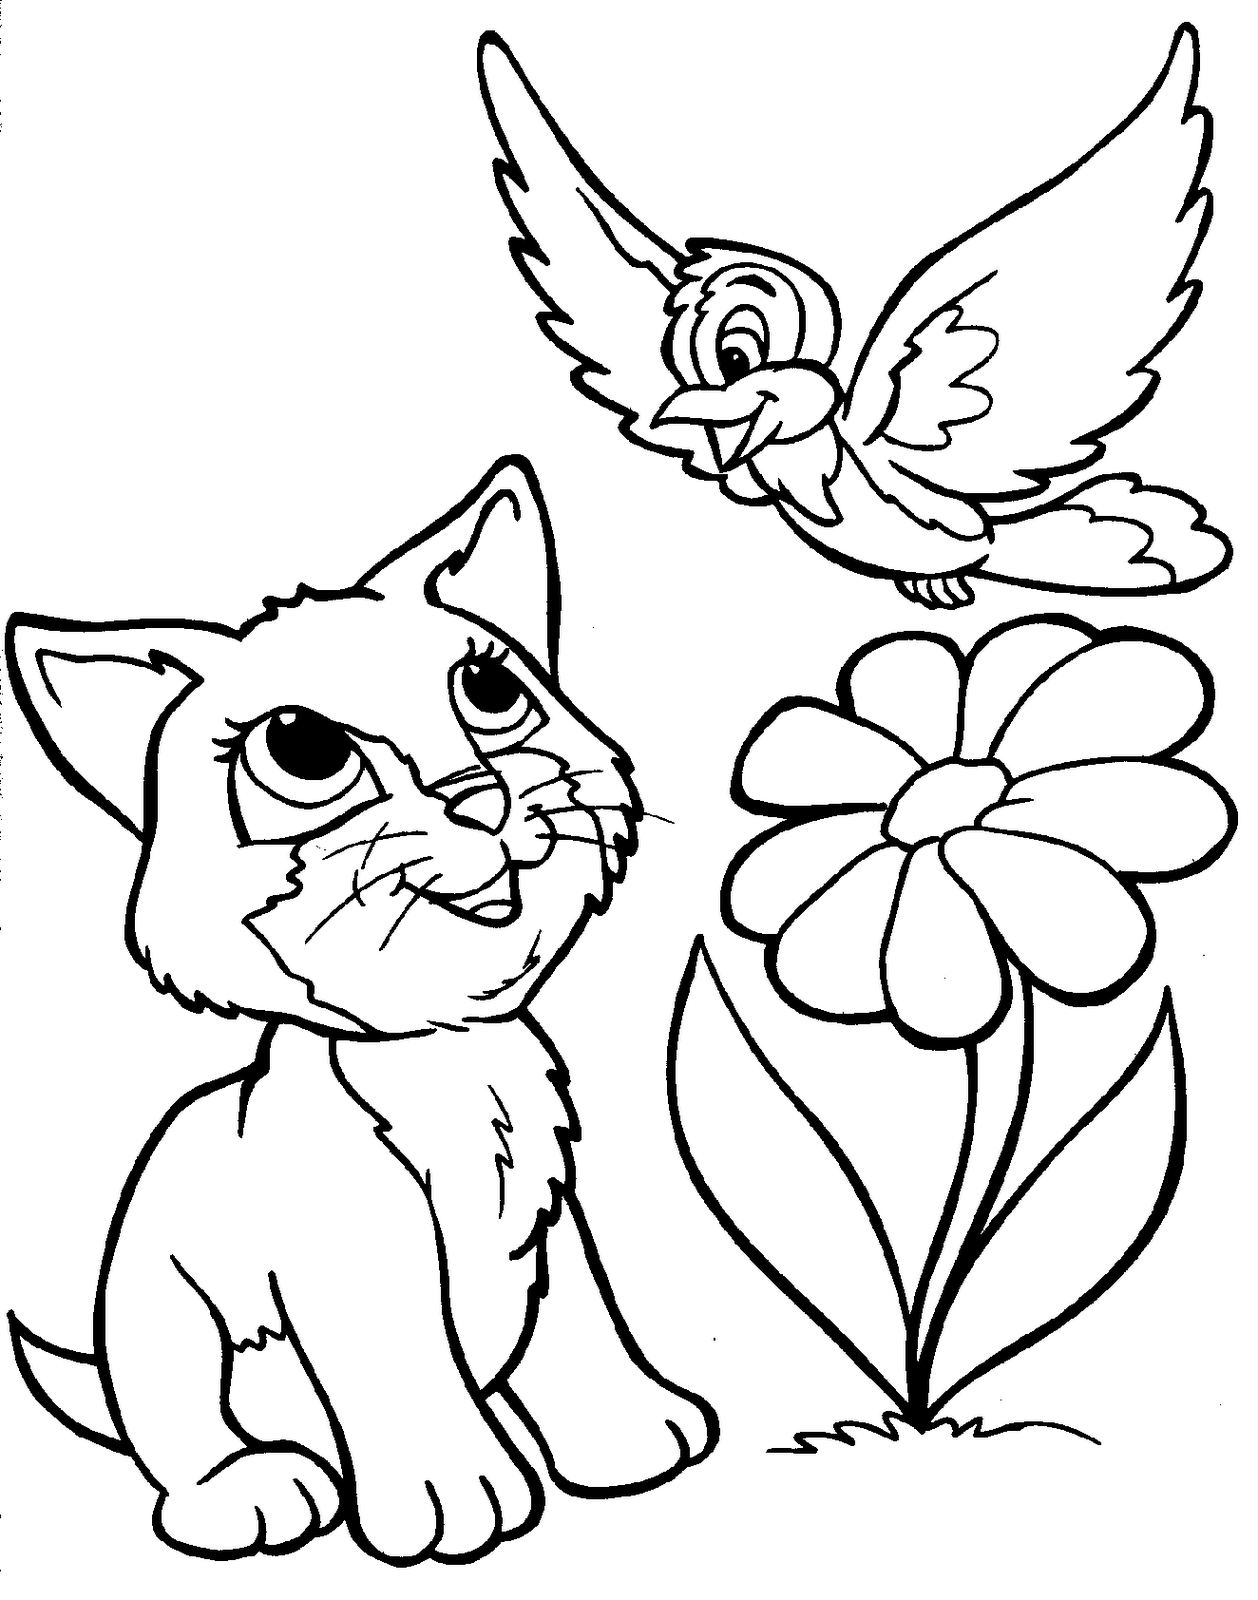 cartoons coloring pictures cartoon network coloring pages free printable cartoon cartoons coloring pictures